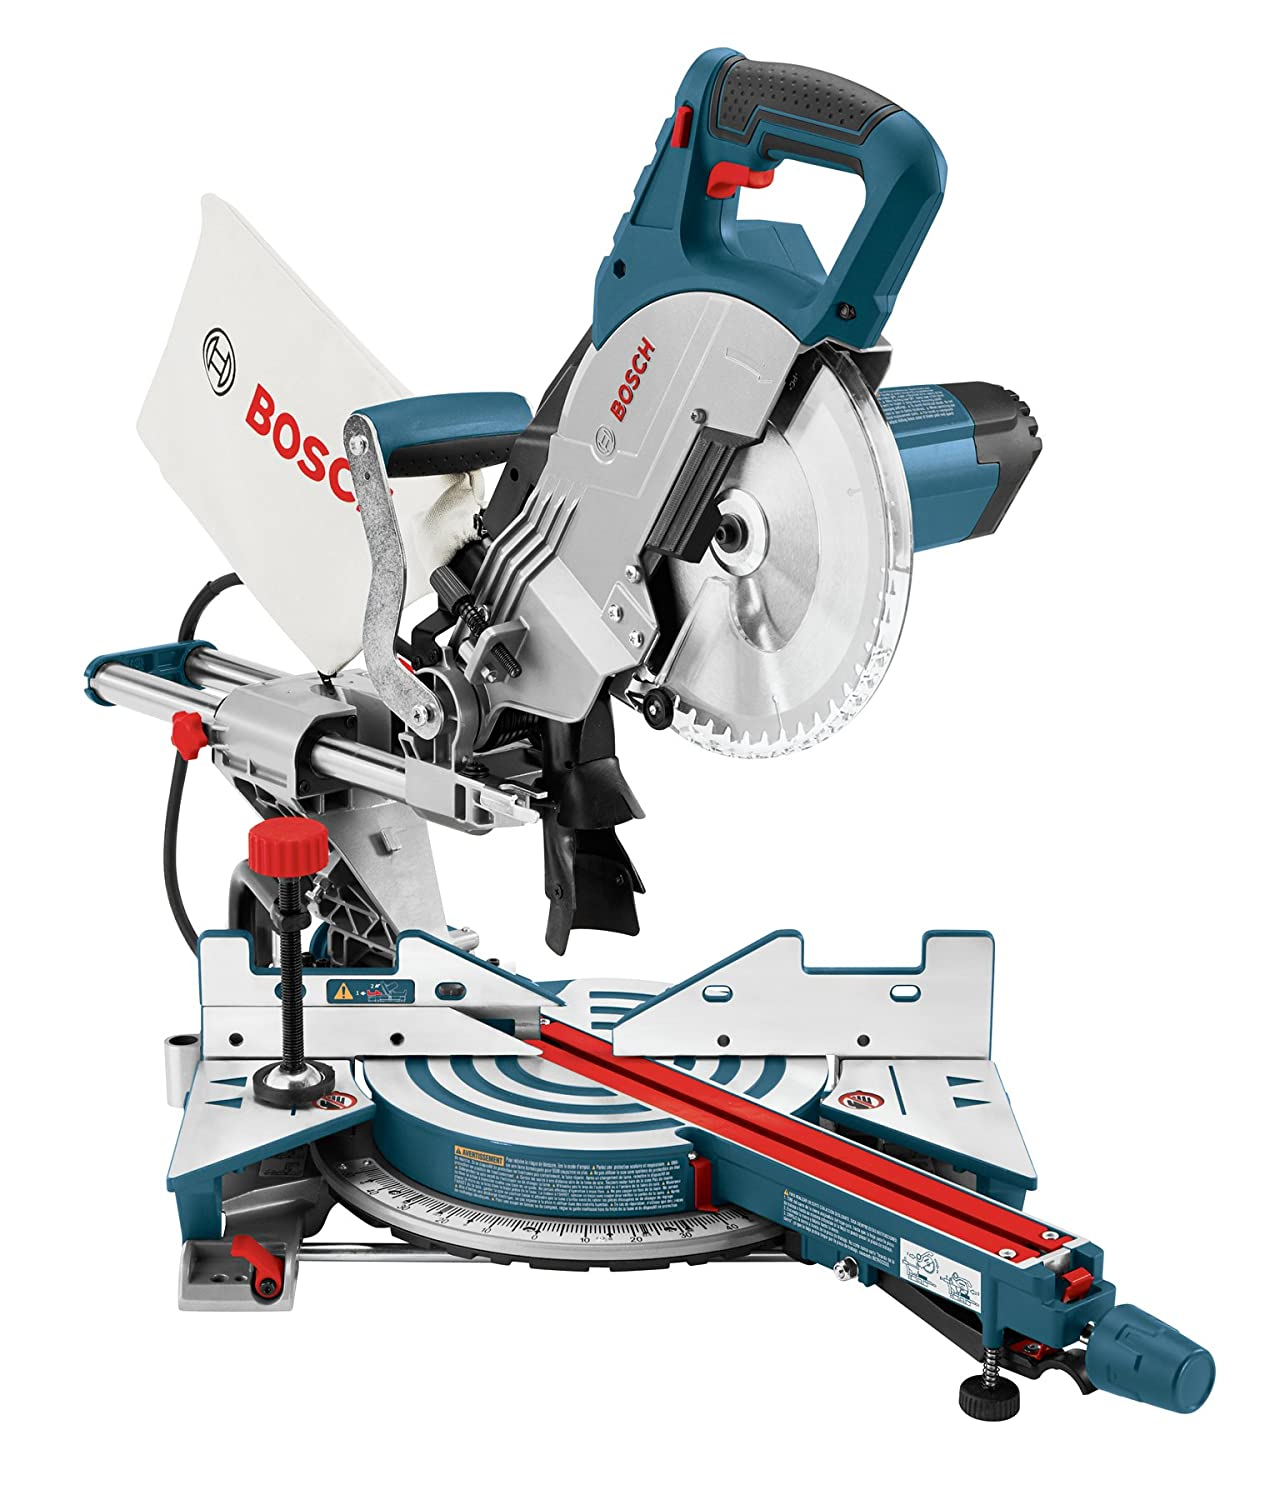 Bosch cm8s 8 12 inch single bevel sliding compound miter saw bosch cm8s 8 12 inch single bevel sliding compound miter saw power miter saws amazon greentooth Choice Image